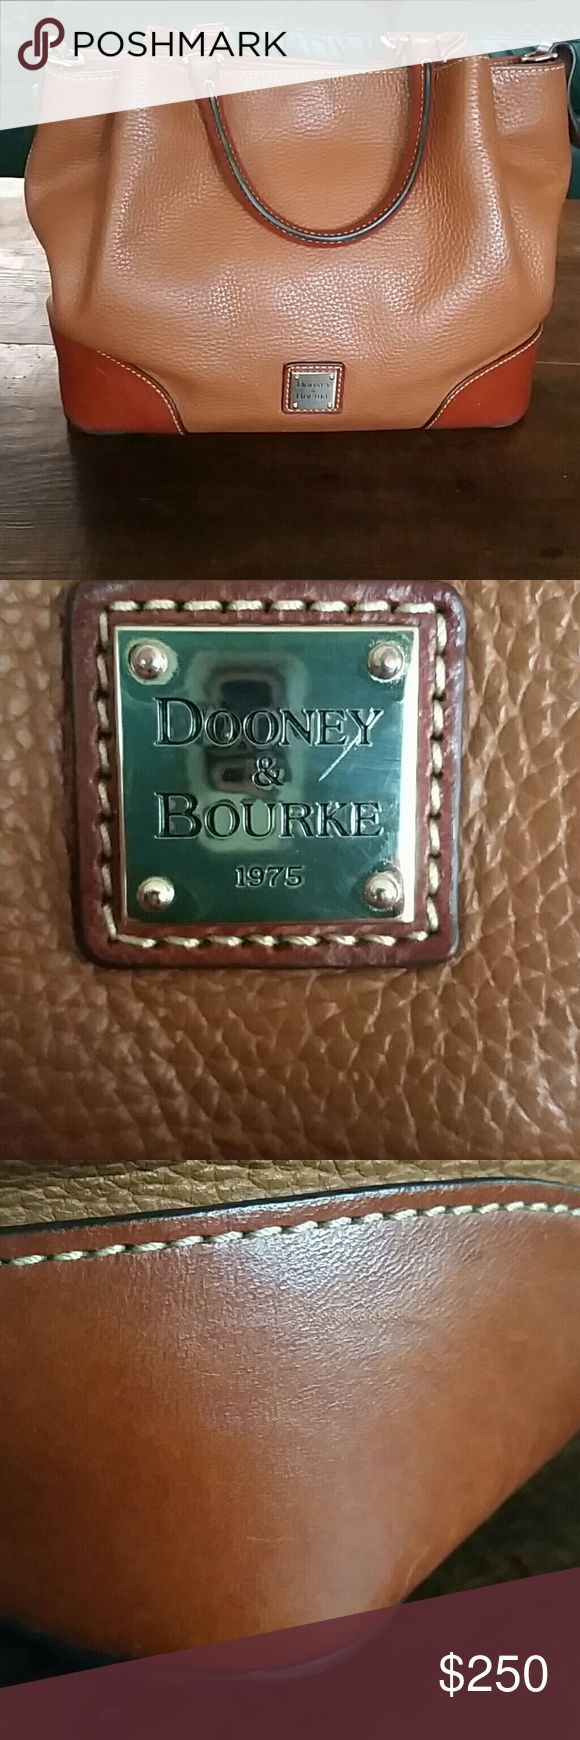 DOONEY & BOURKE brenna satchel caramel color has two pen marks that can be cleaned off with proper products I just don't have them the bottom leather trim needs to be cleaned as well I will have an additional post with more photos of the inside of the bag Dooney & Bourke Bags Satchels